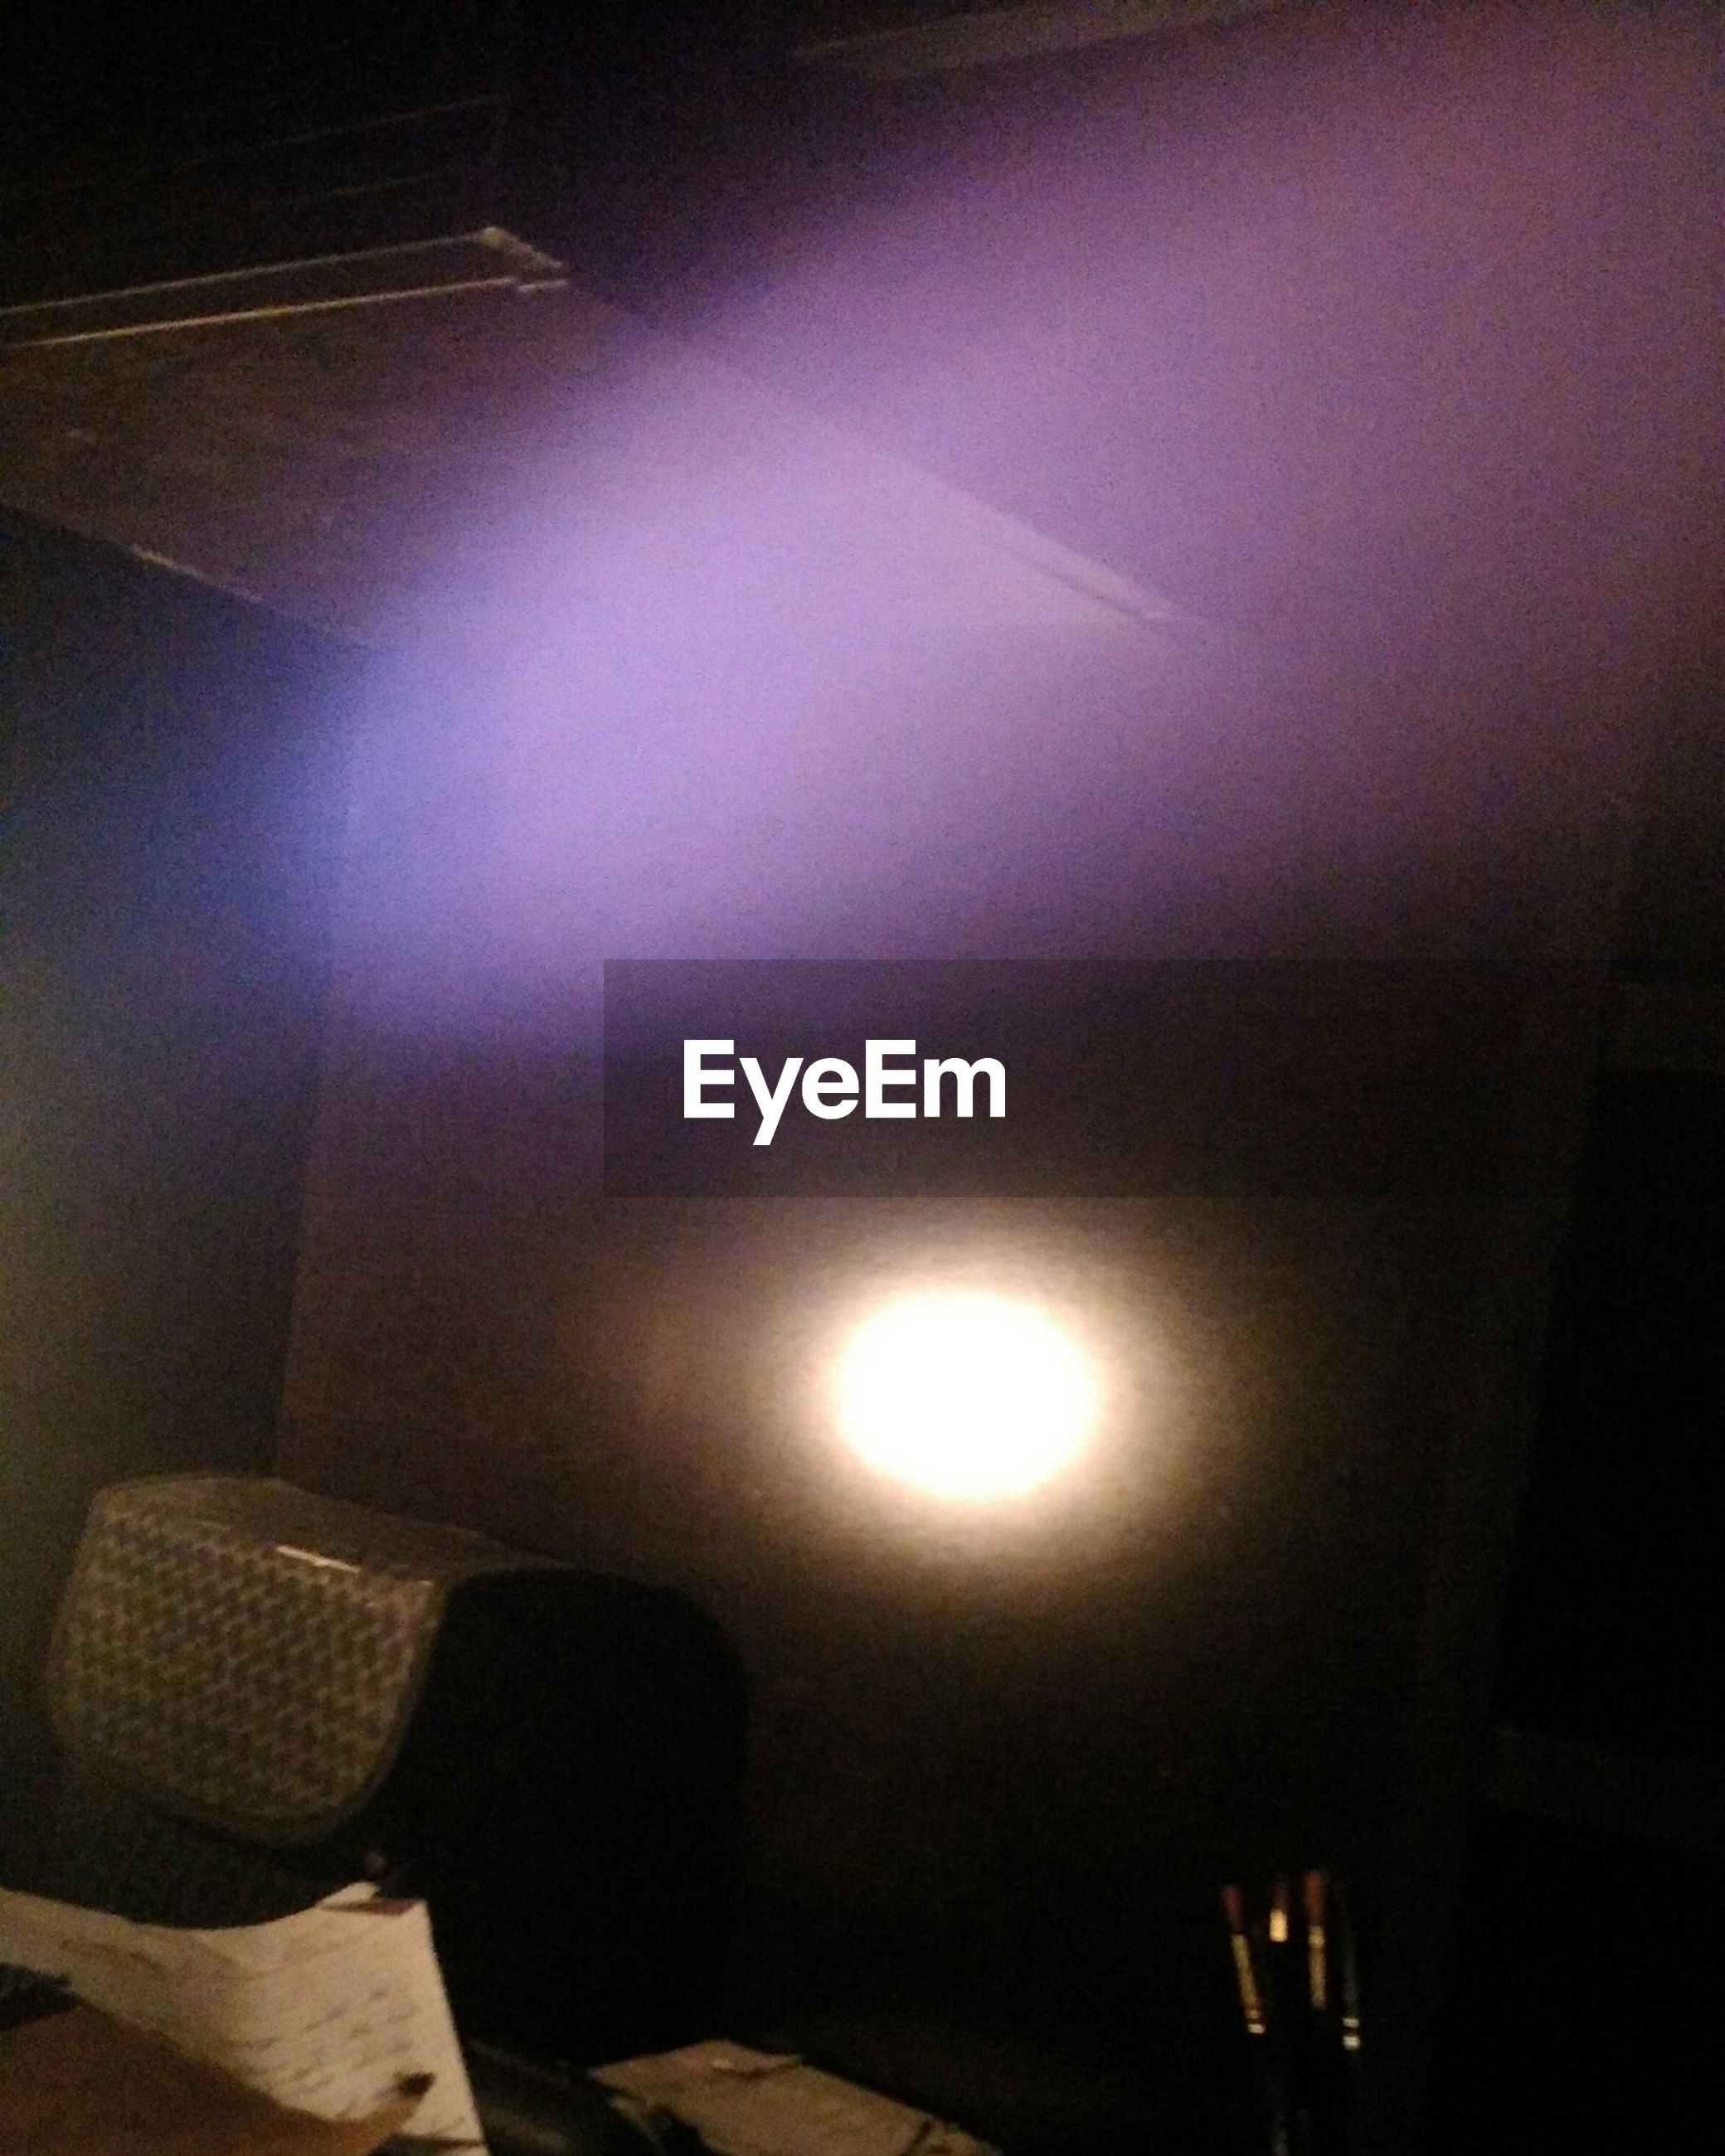 indoors, illuminated, lighting equipment, electricity, home interior, light - natural phenomenon, low angle view, glowing, electric lamp, ceiling, no people, lamp, electric light, dark, wall - building feature, close-up, light, built structure, lit, night